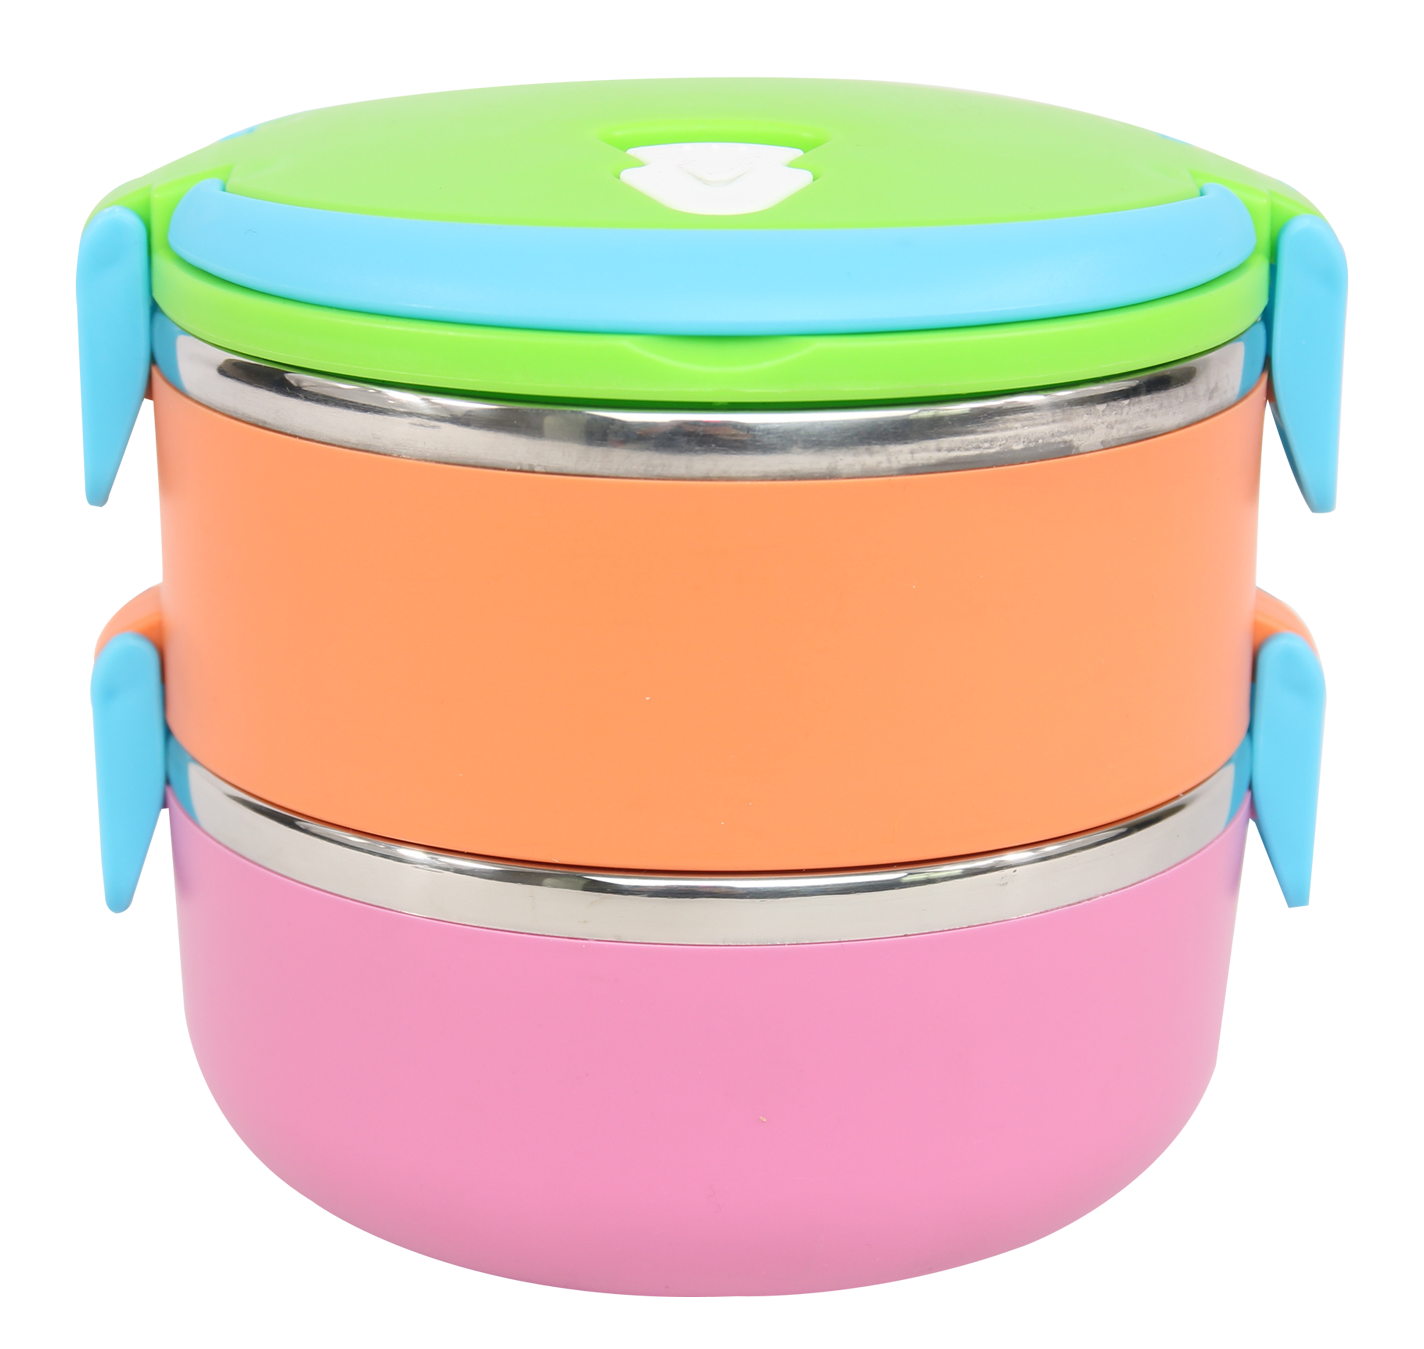 Lunch Box Png Image Lunch Box Lunch Box